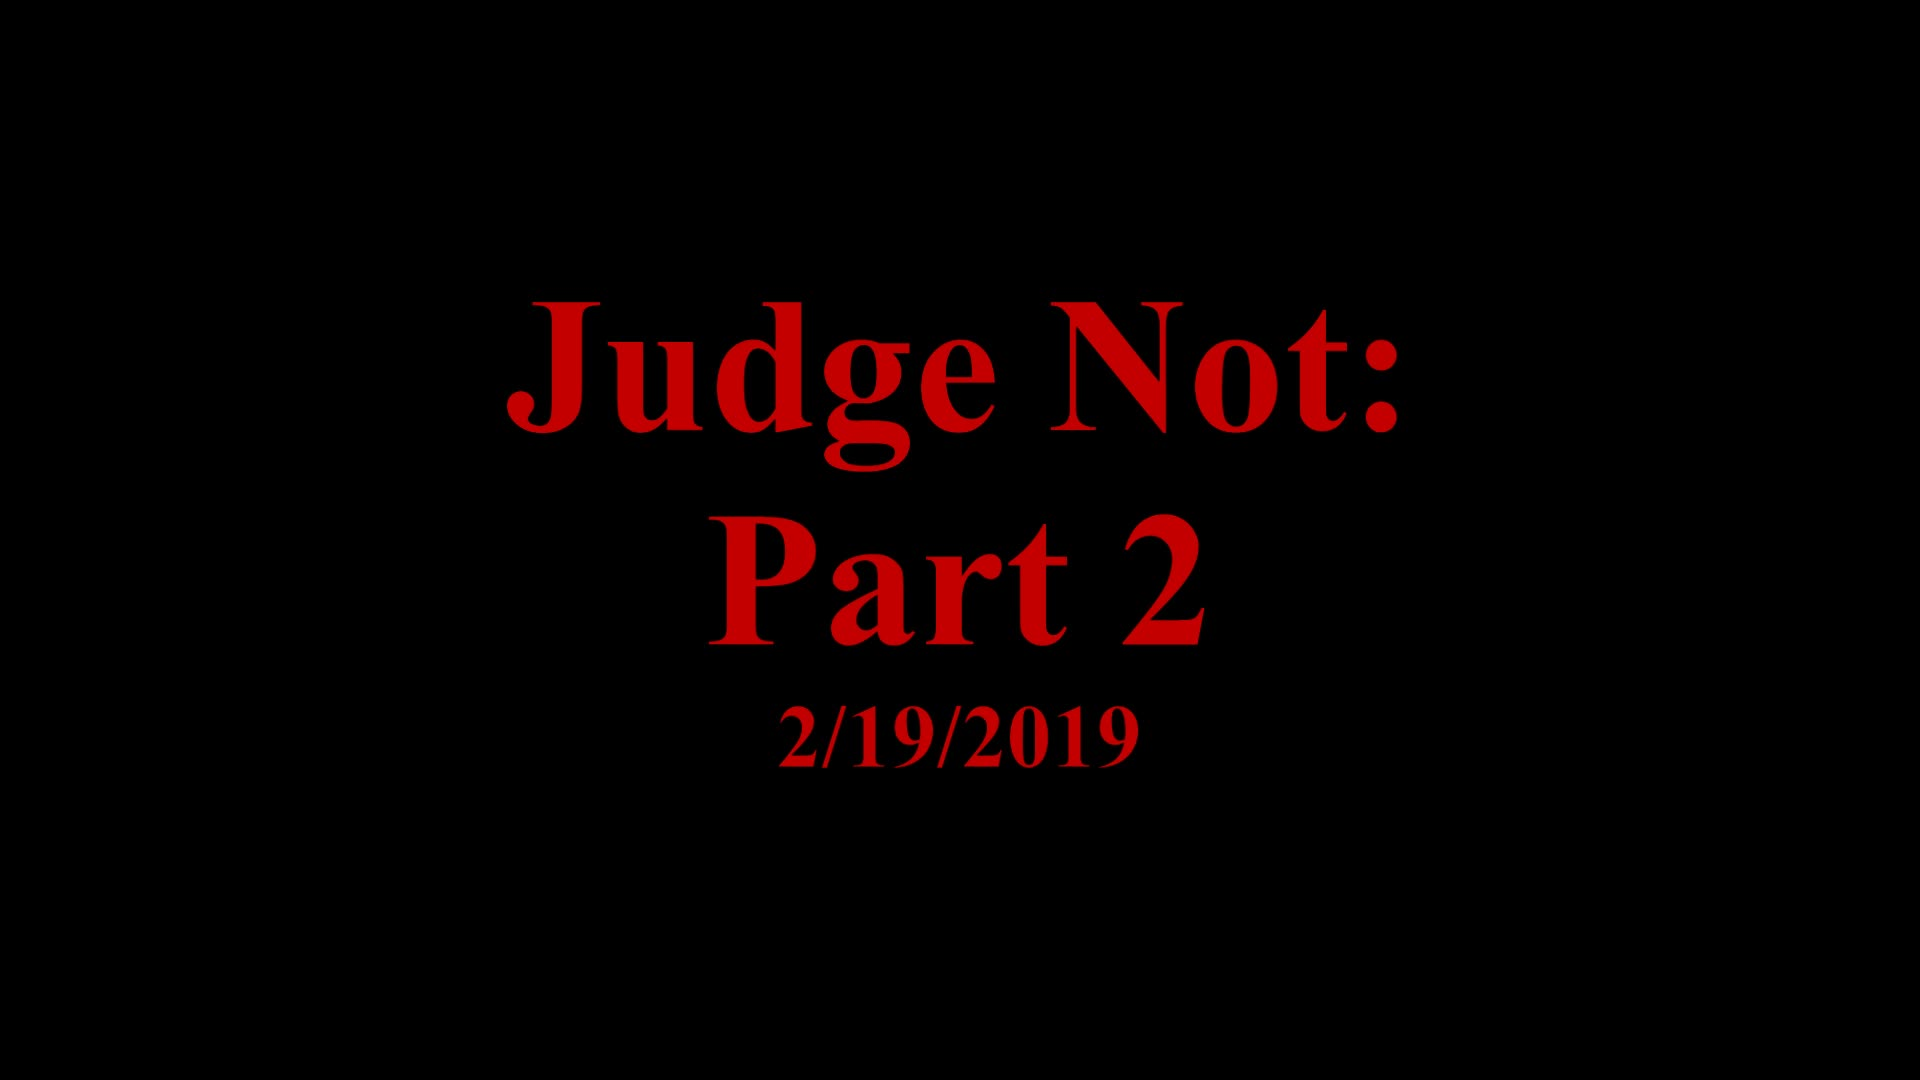 Judge Not Part 2